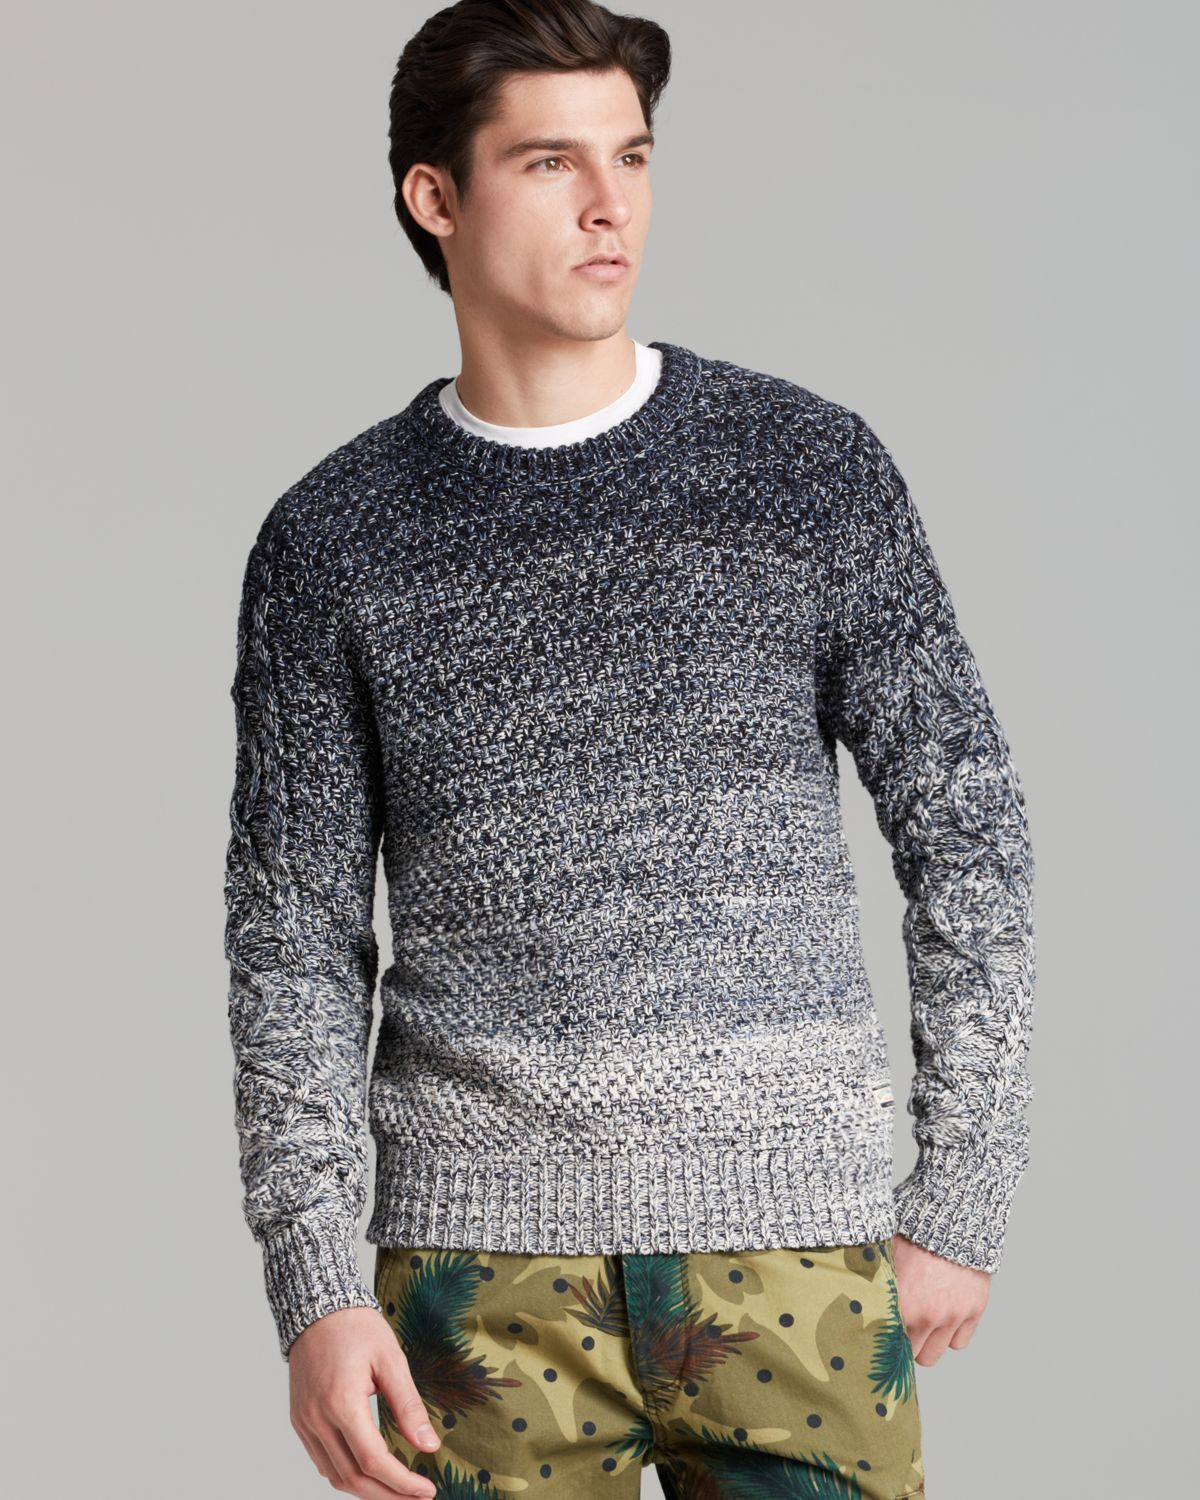 Knitting Patterns For Mens Half Sweaters : Scotch & soda Ombre Cable Knit Sweater in Gray for Men Lyst